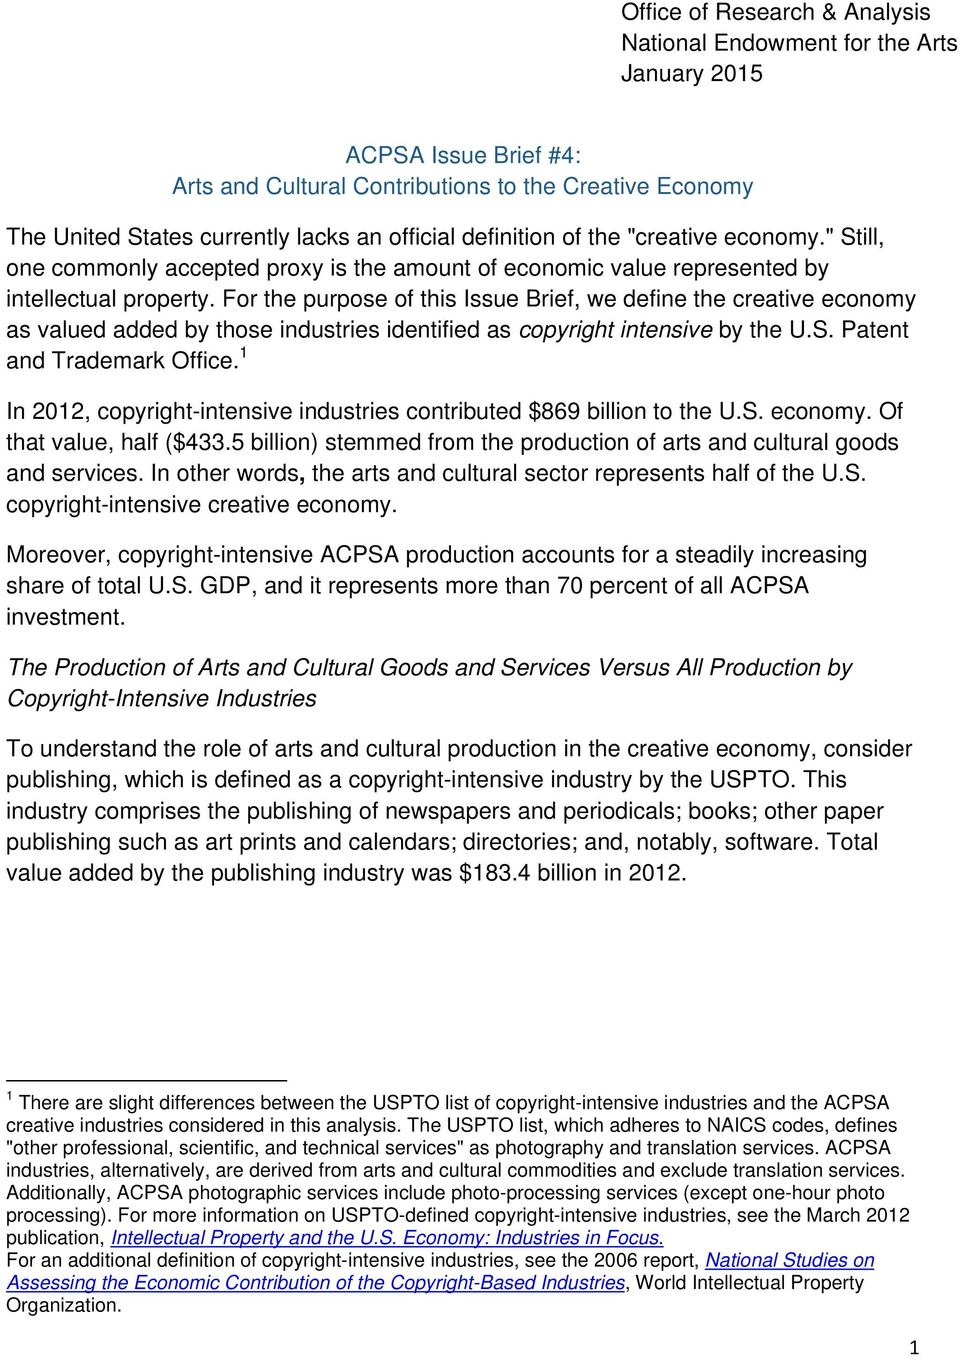 For the purpose of this Issue Brief, we define the creative economy as valued added by those industries identified as copyright intensive by the U.S. Patent and Trademark Office.